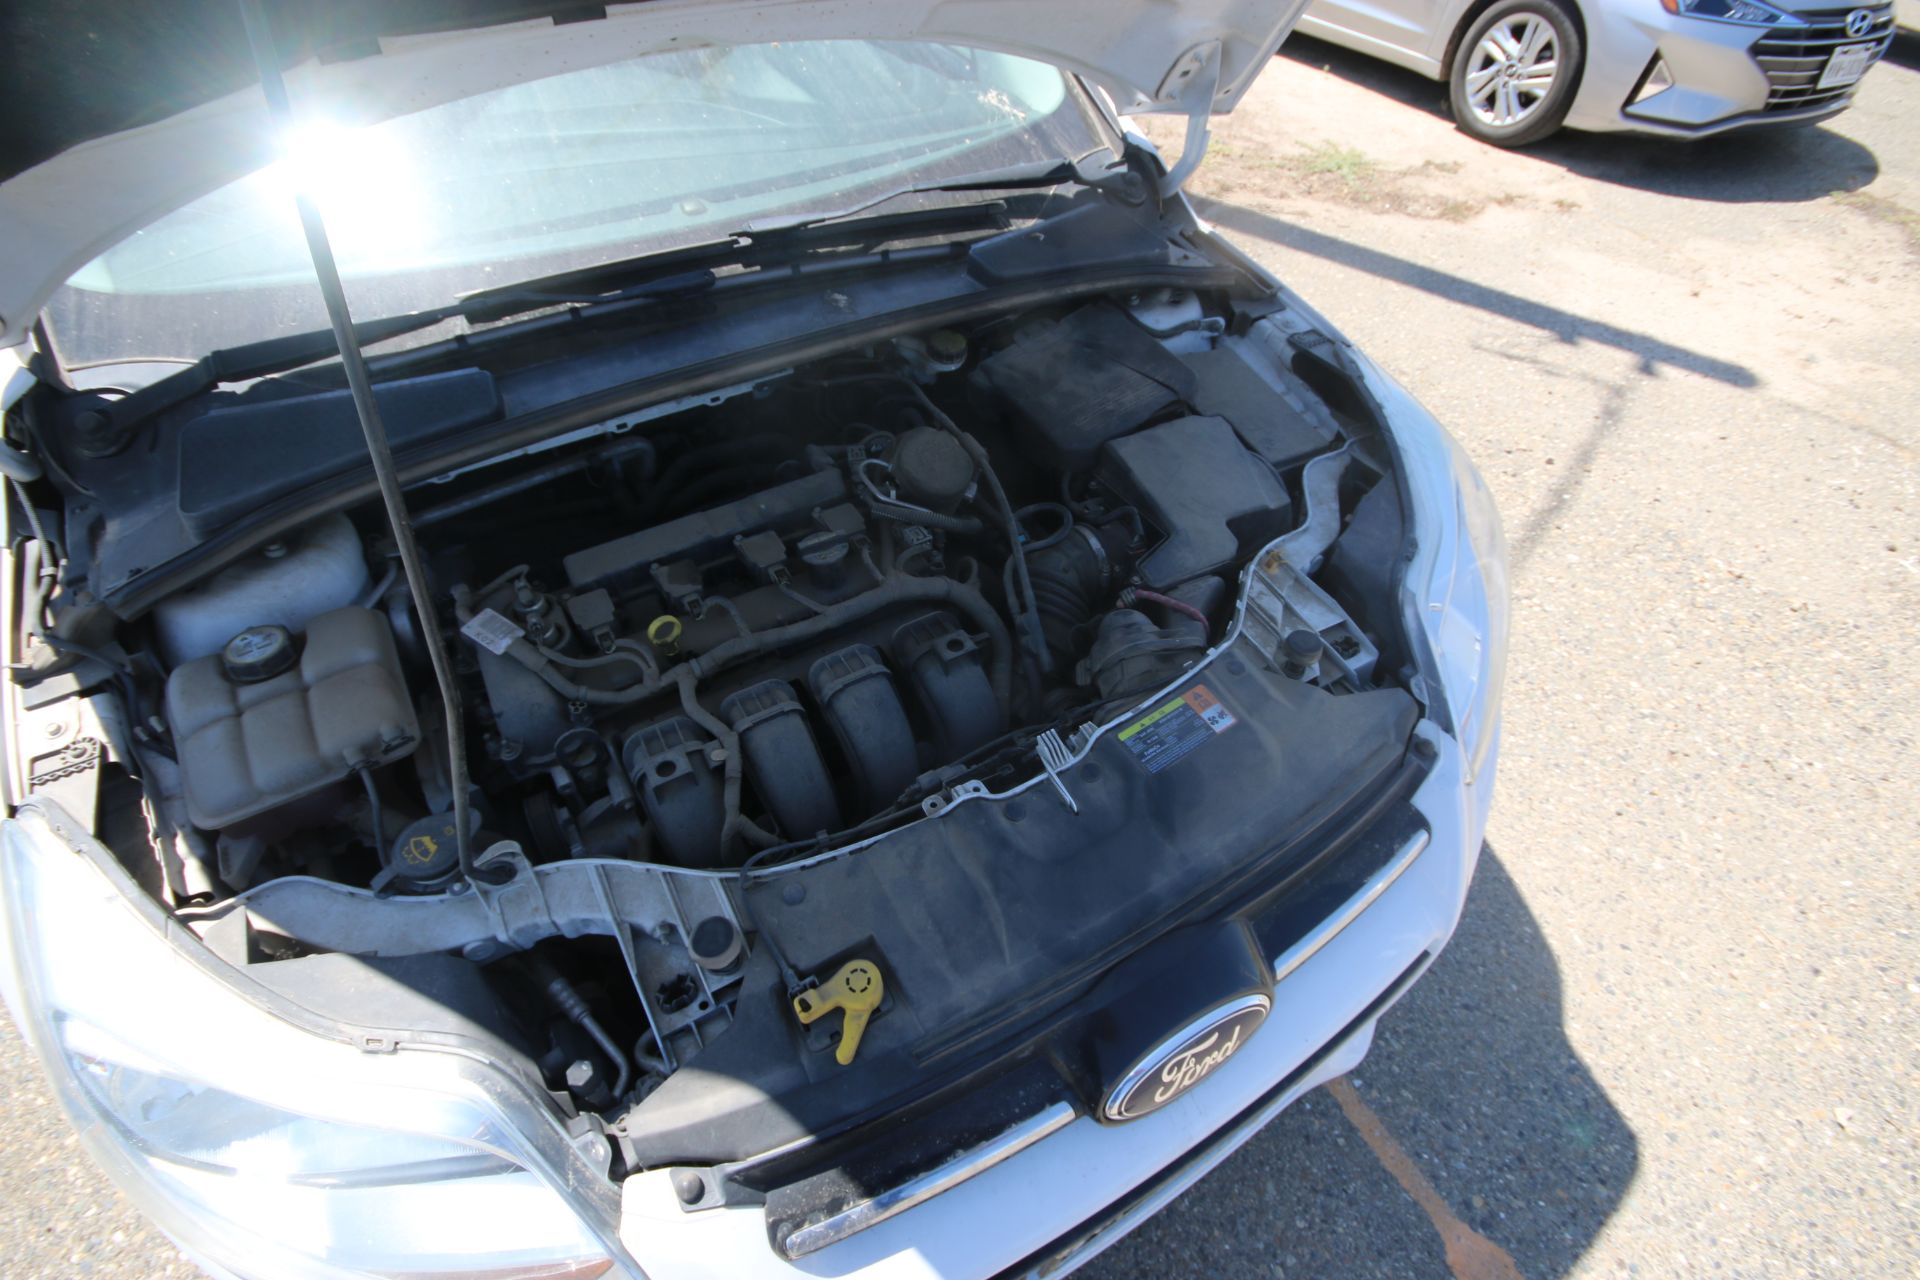 2012 White Ford Focus SE Hatchback 4D, VIN #: 1FAHP3K27CL423326, with 116,017 Miles, with 4-Doors, - Image 26 of 26